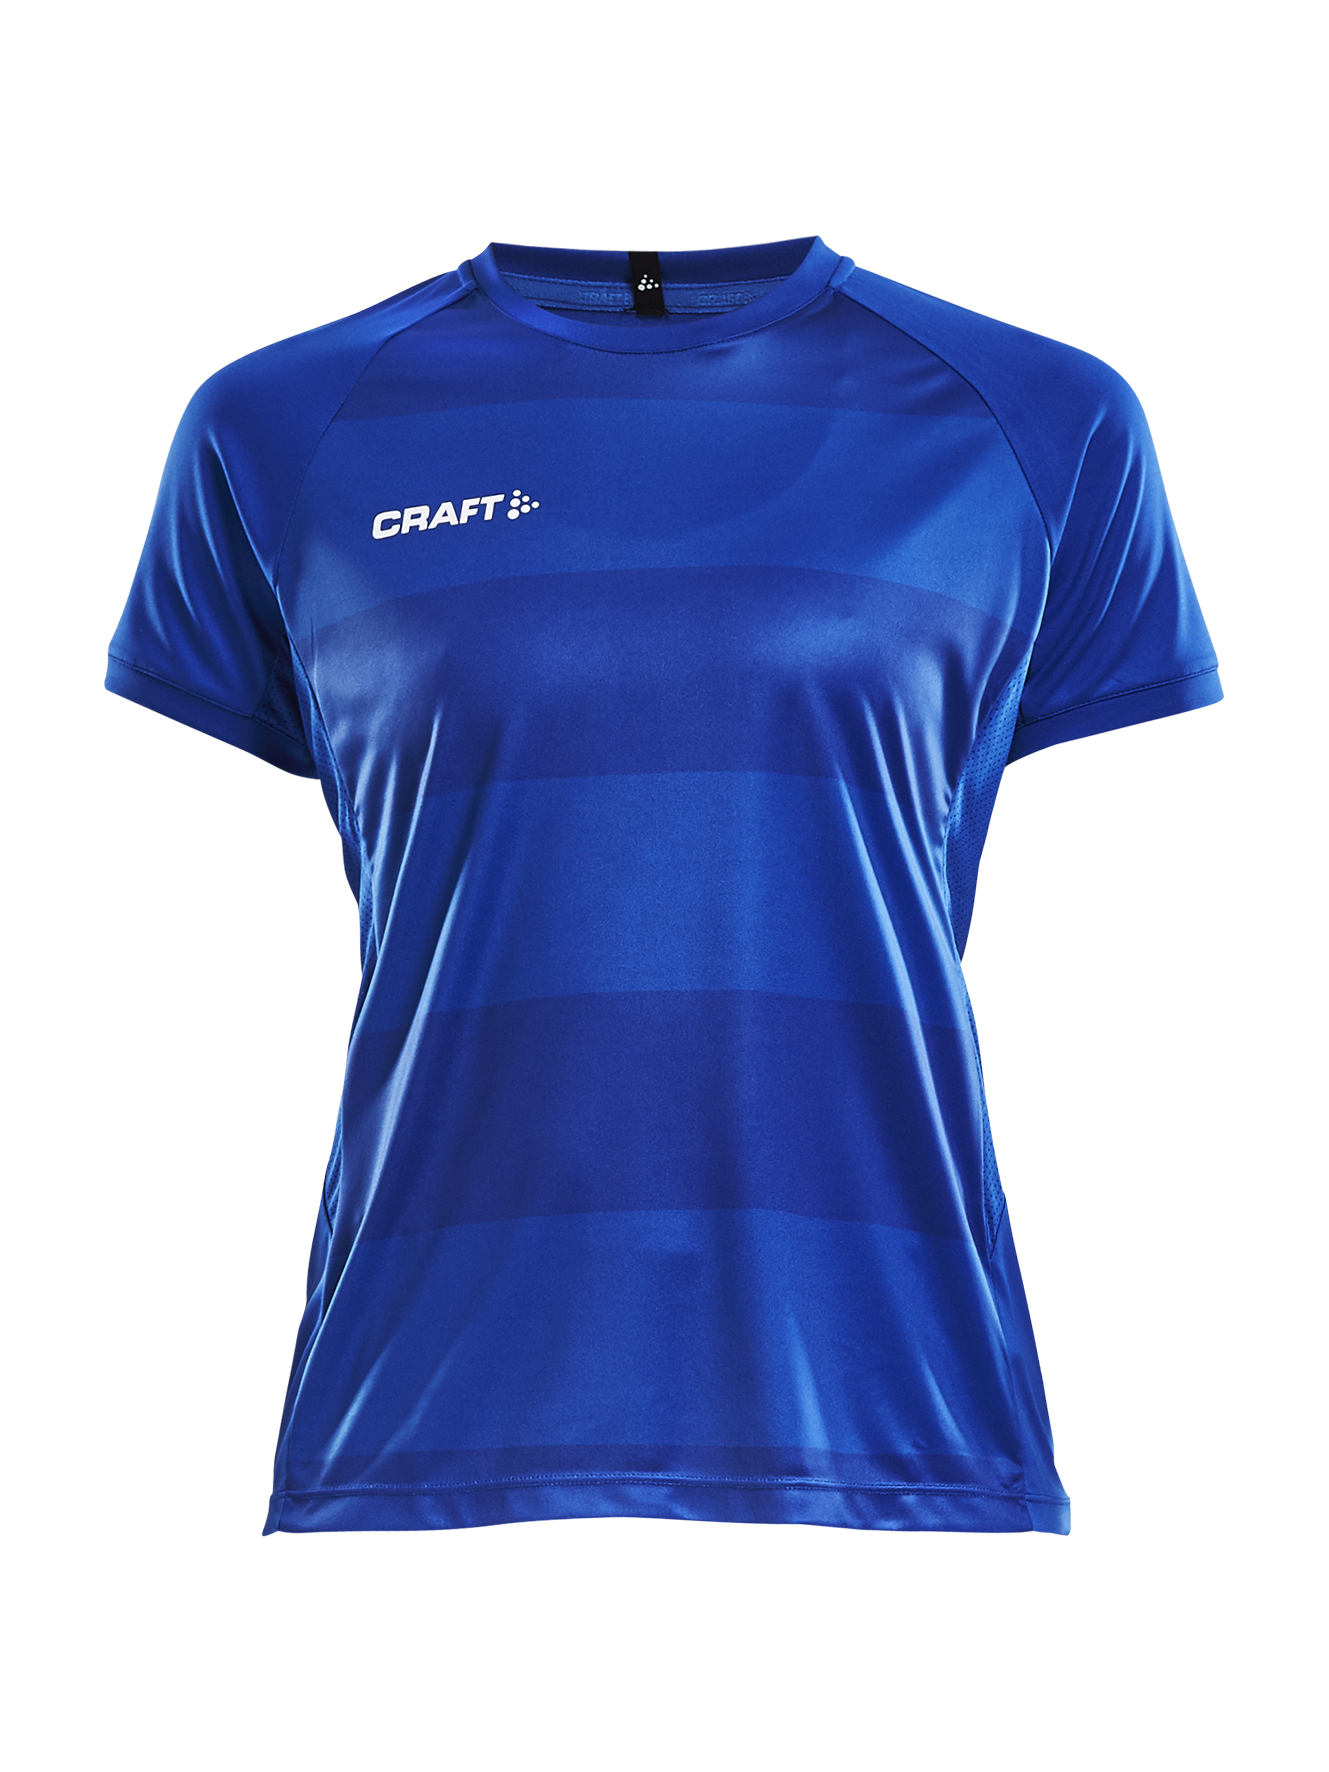 Craft PROGRESS Jersey Graphic WMN ROYAL BLUE (TONE IN TONE)